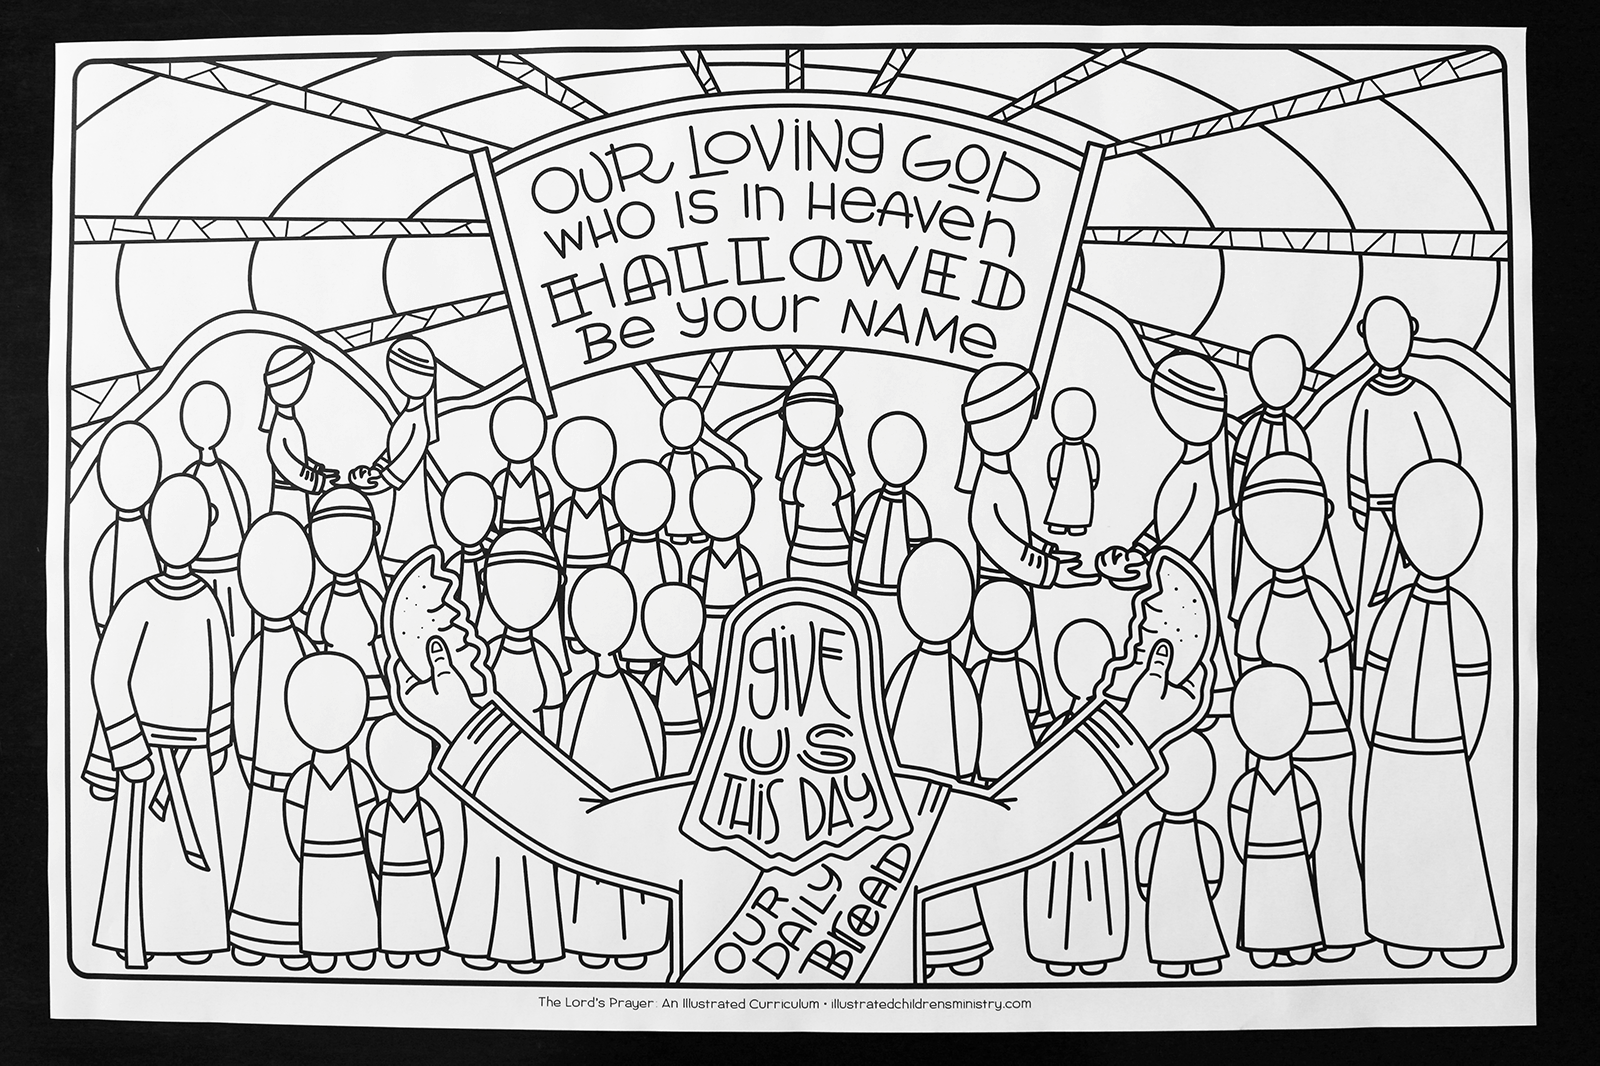 Coloring poster for the Lord's Prayer